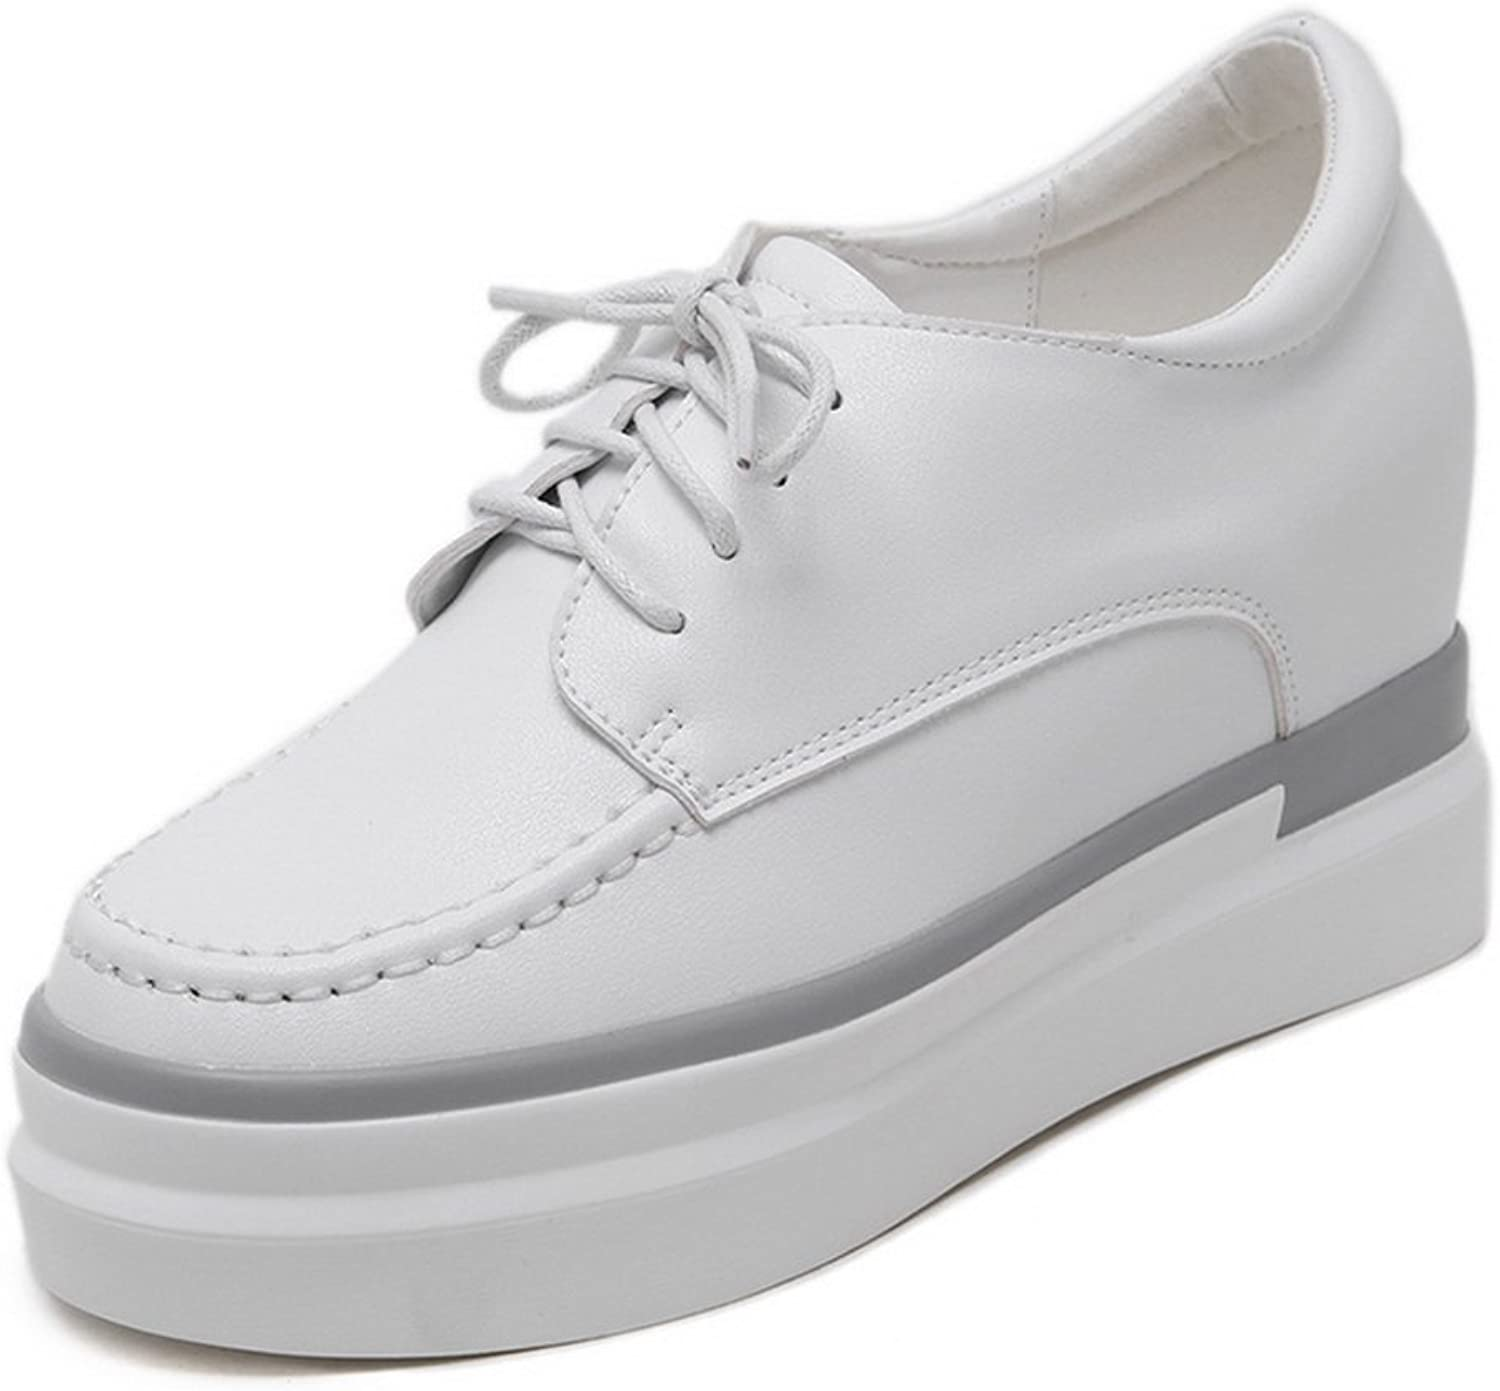 1TO9 Womens Lace-Up Platform Heighten Inside White Urethane Oxfords shoes - 7 B(M) US